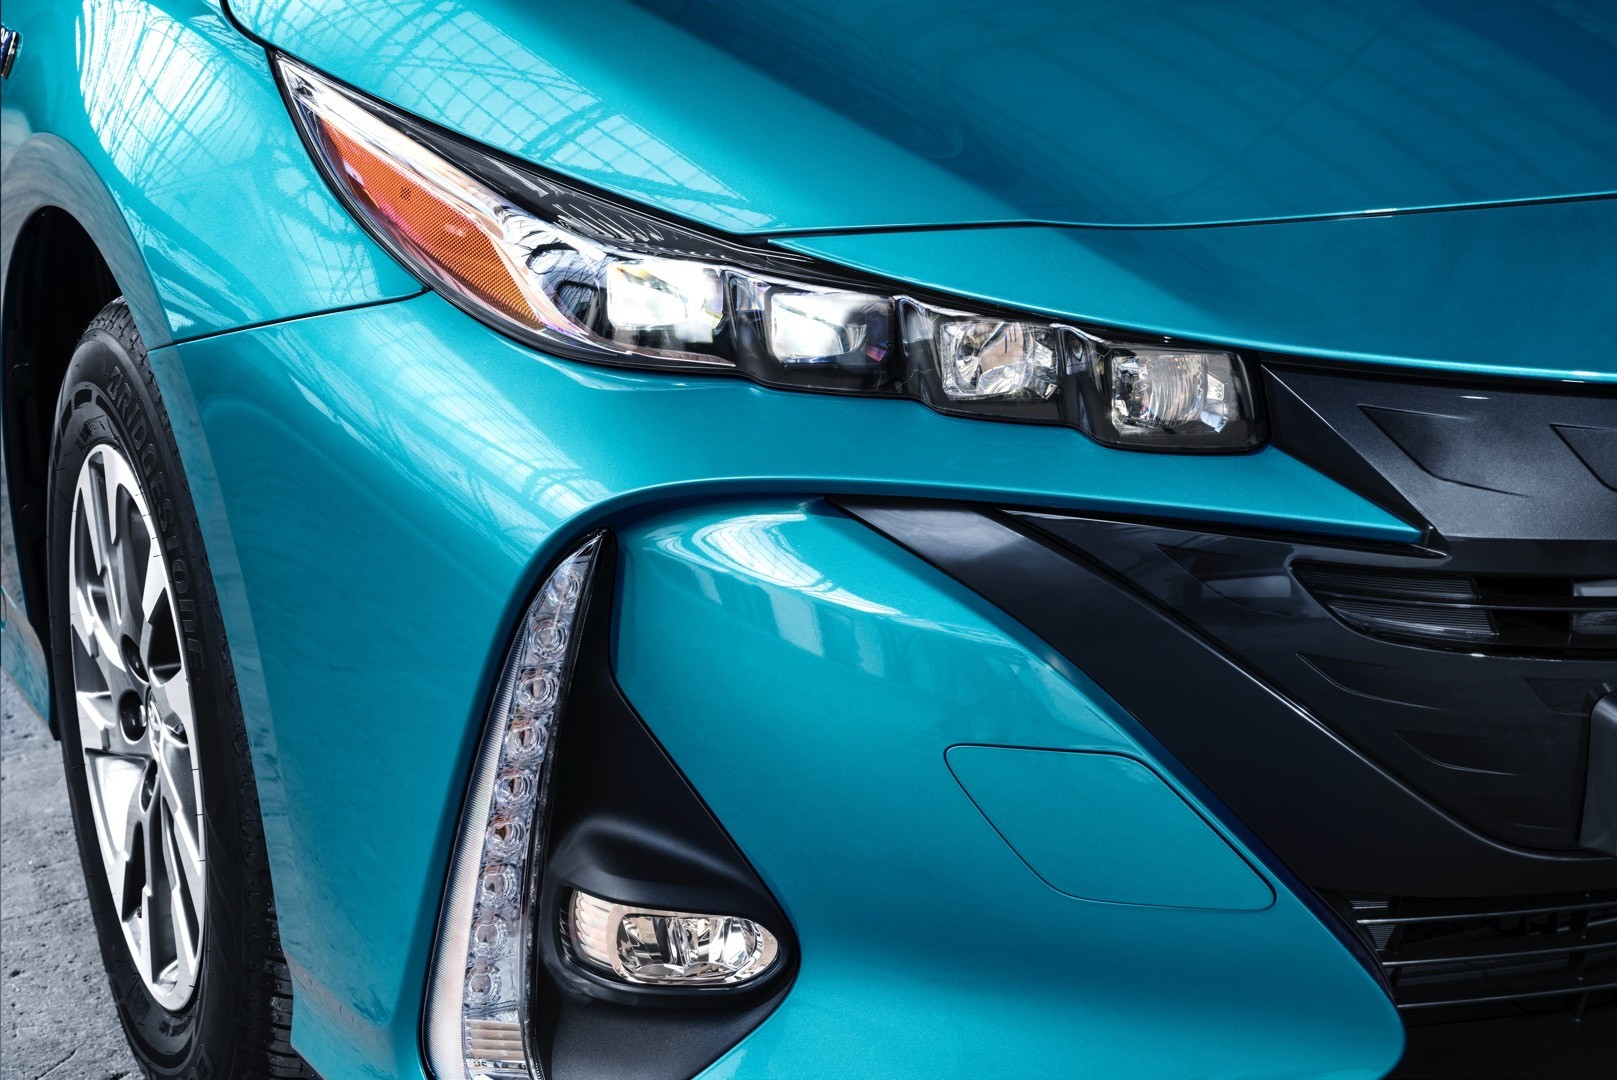 Toyota Prius Plug In Hybrid Gets Different Name For Europe Adds Solar Roof on Toyota Prius Hybrid Battery